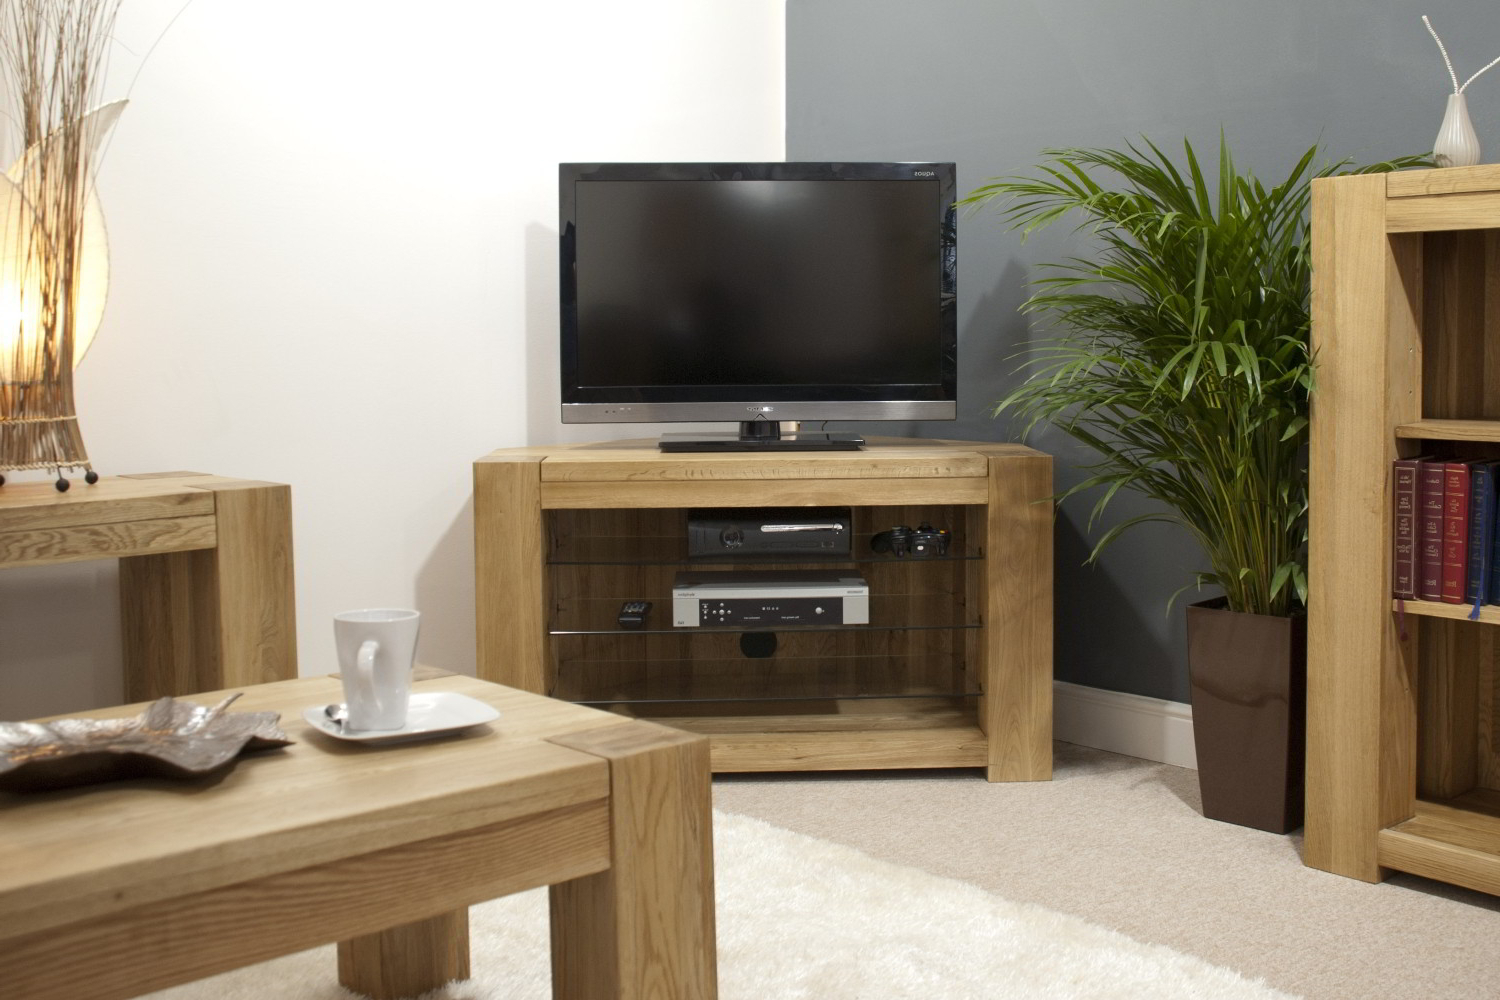 Pemberton Solid Oak Living Room Furniture Corner Television Cabinet In Well Known Corner Wooden Tv Cabinets (Gallery 17 of 20)